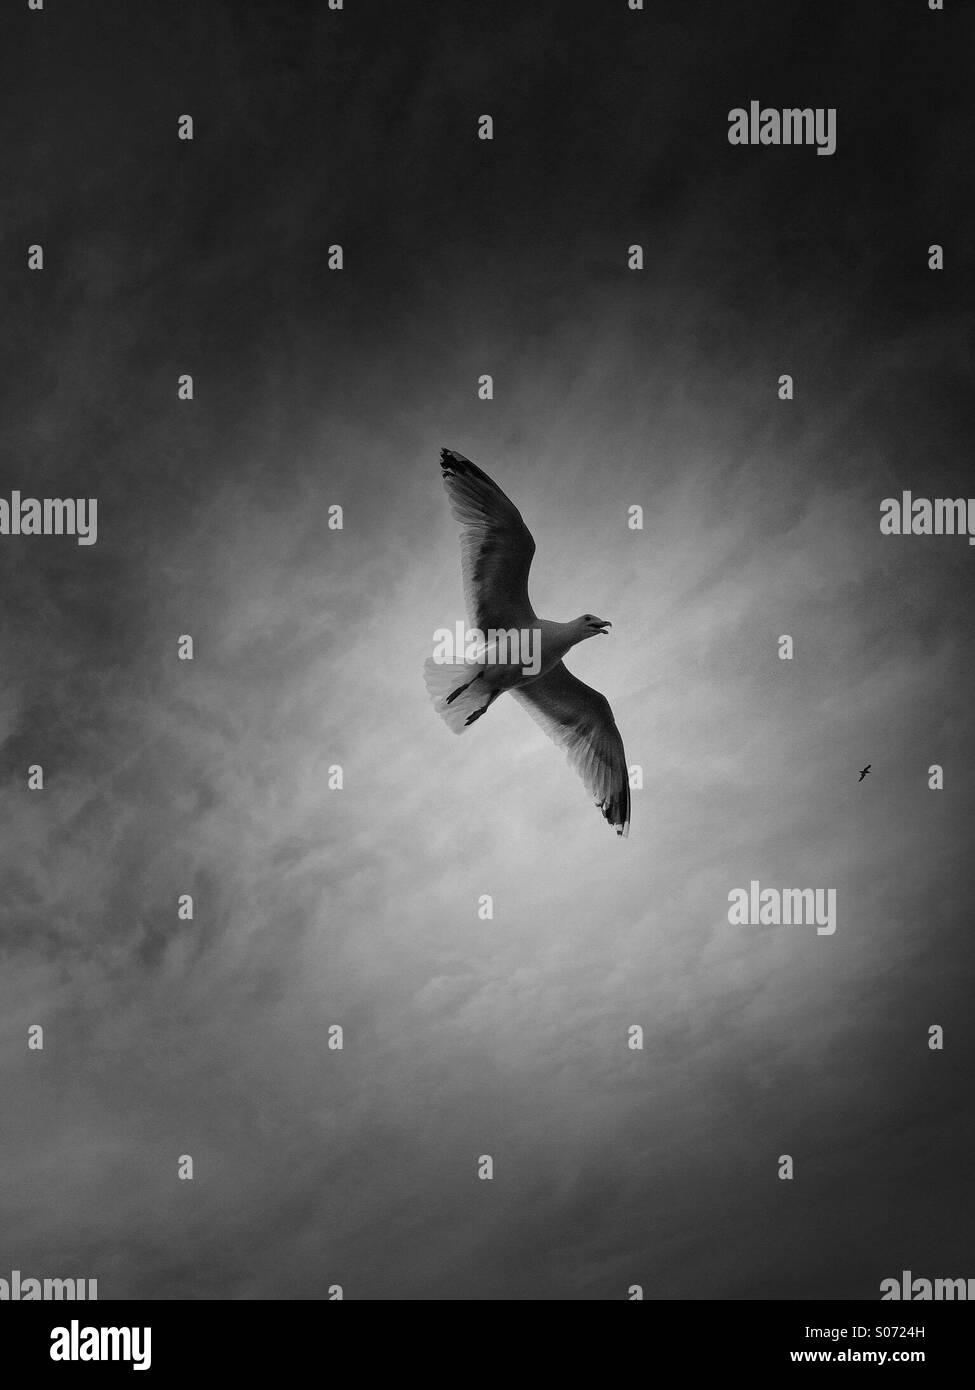 The seagull - Stock Image